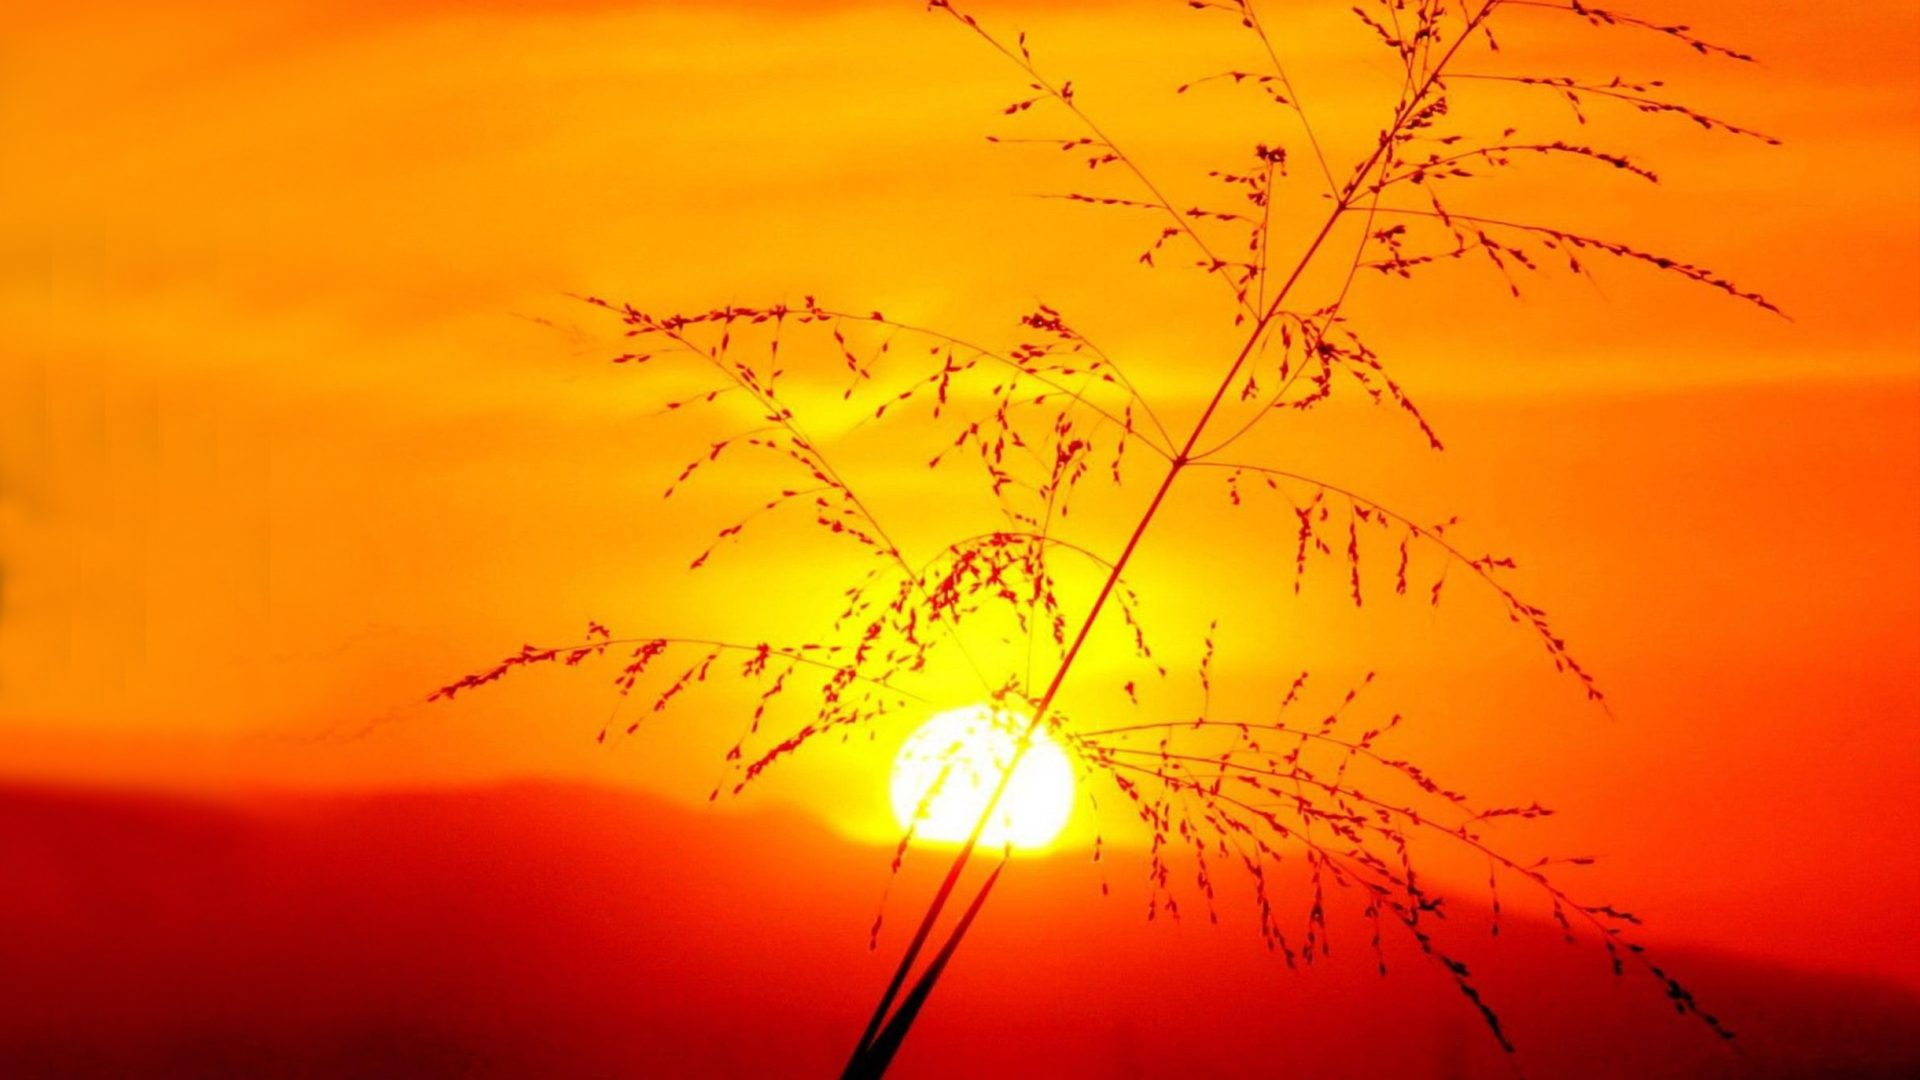 Download Hd Good Morning Wallpaper Sunset Yellow Sun Dry Grass Red Sky Wallpapers13 Com